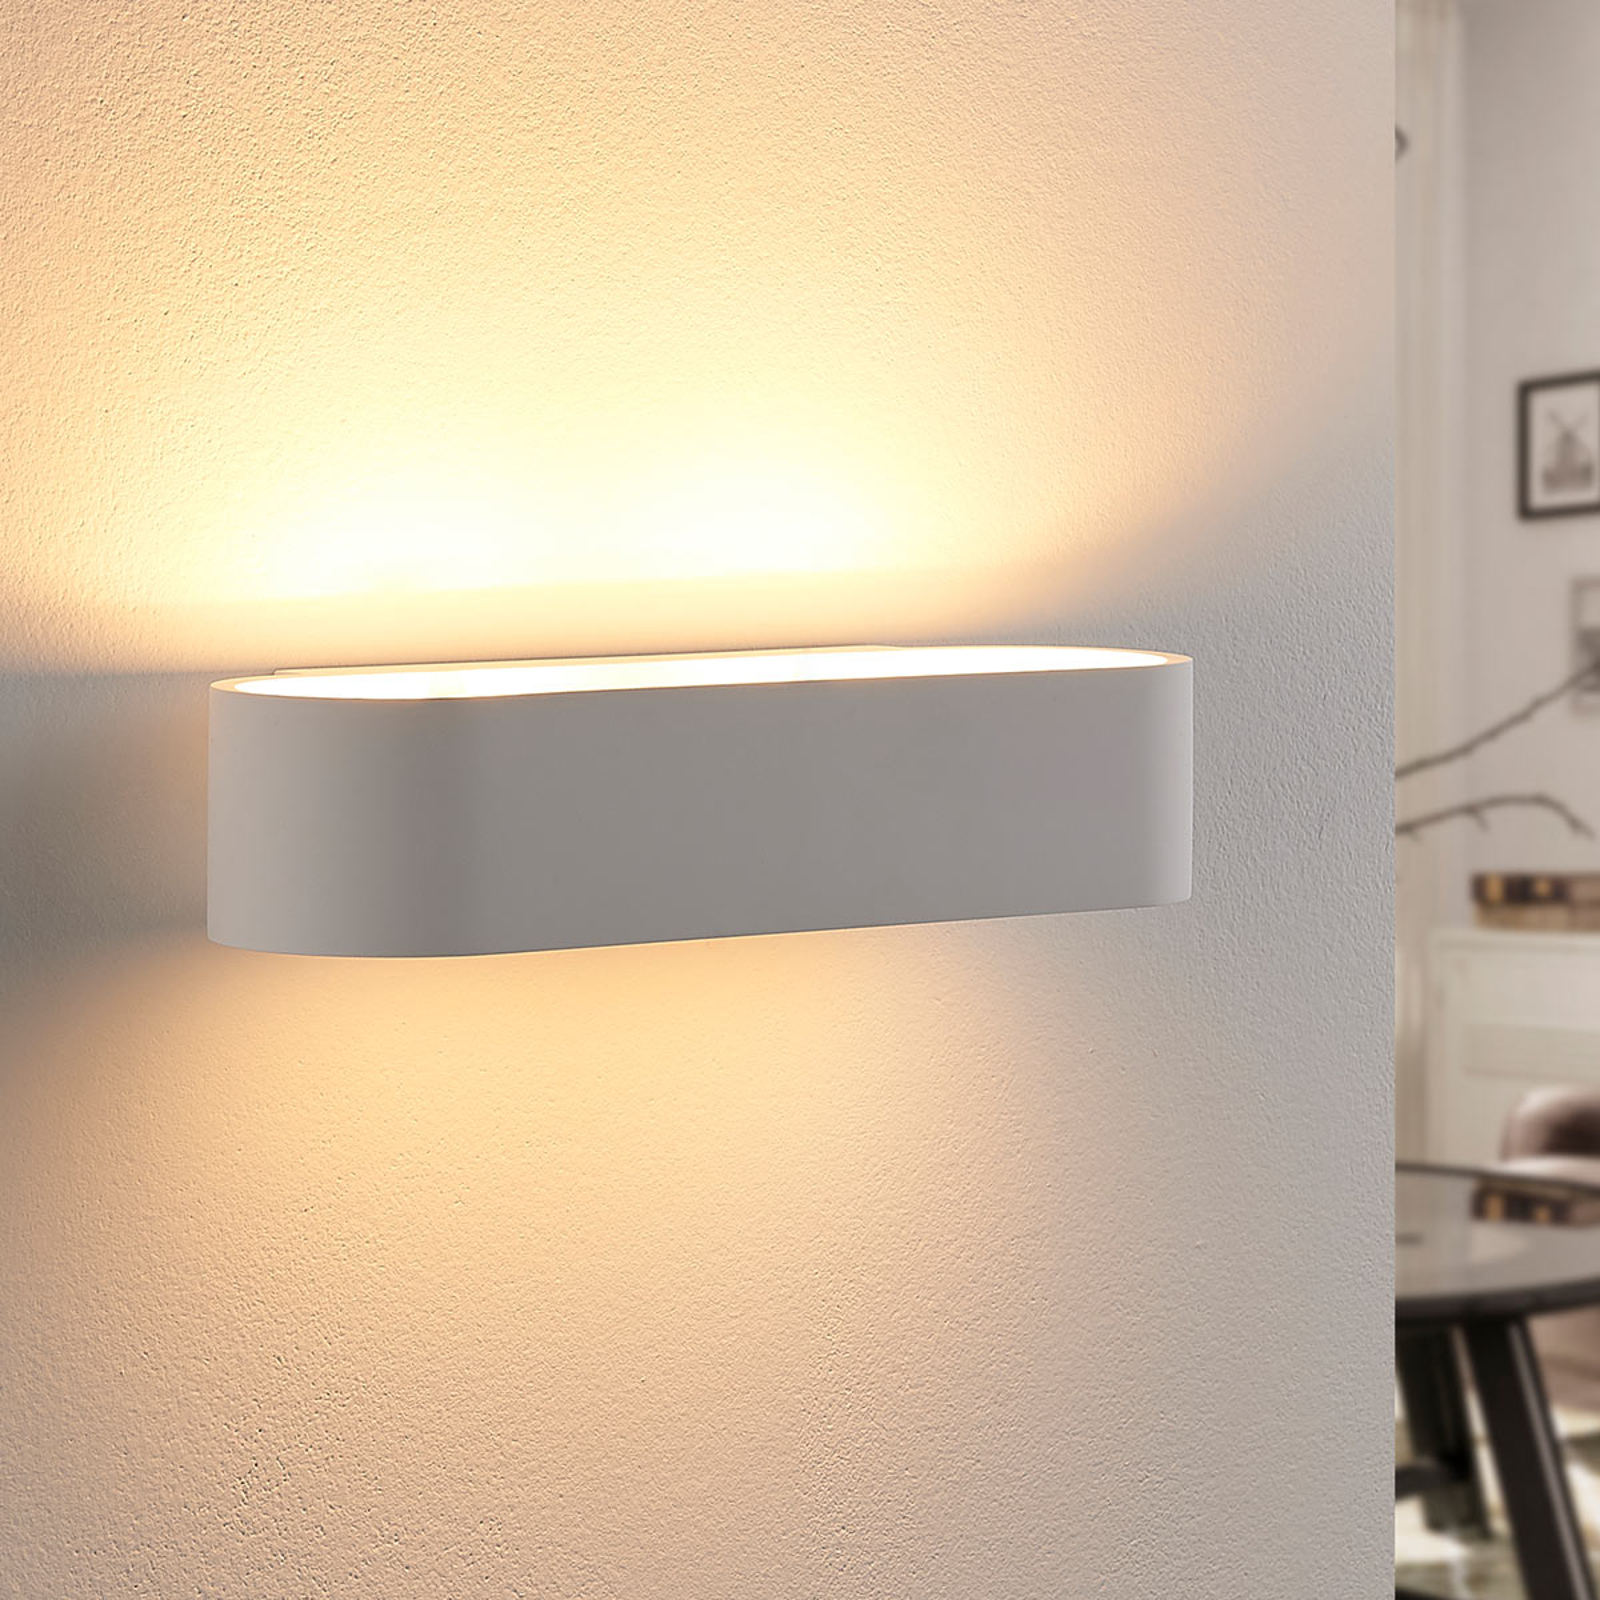 Applique LED di gesso Fioni, forma arrotondata